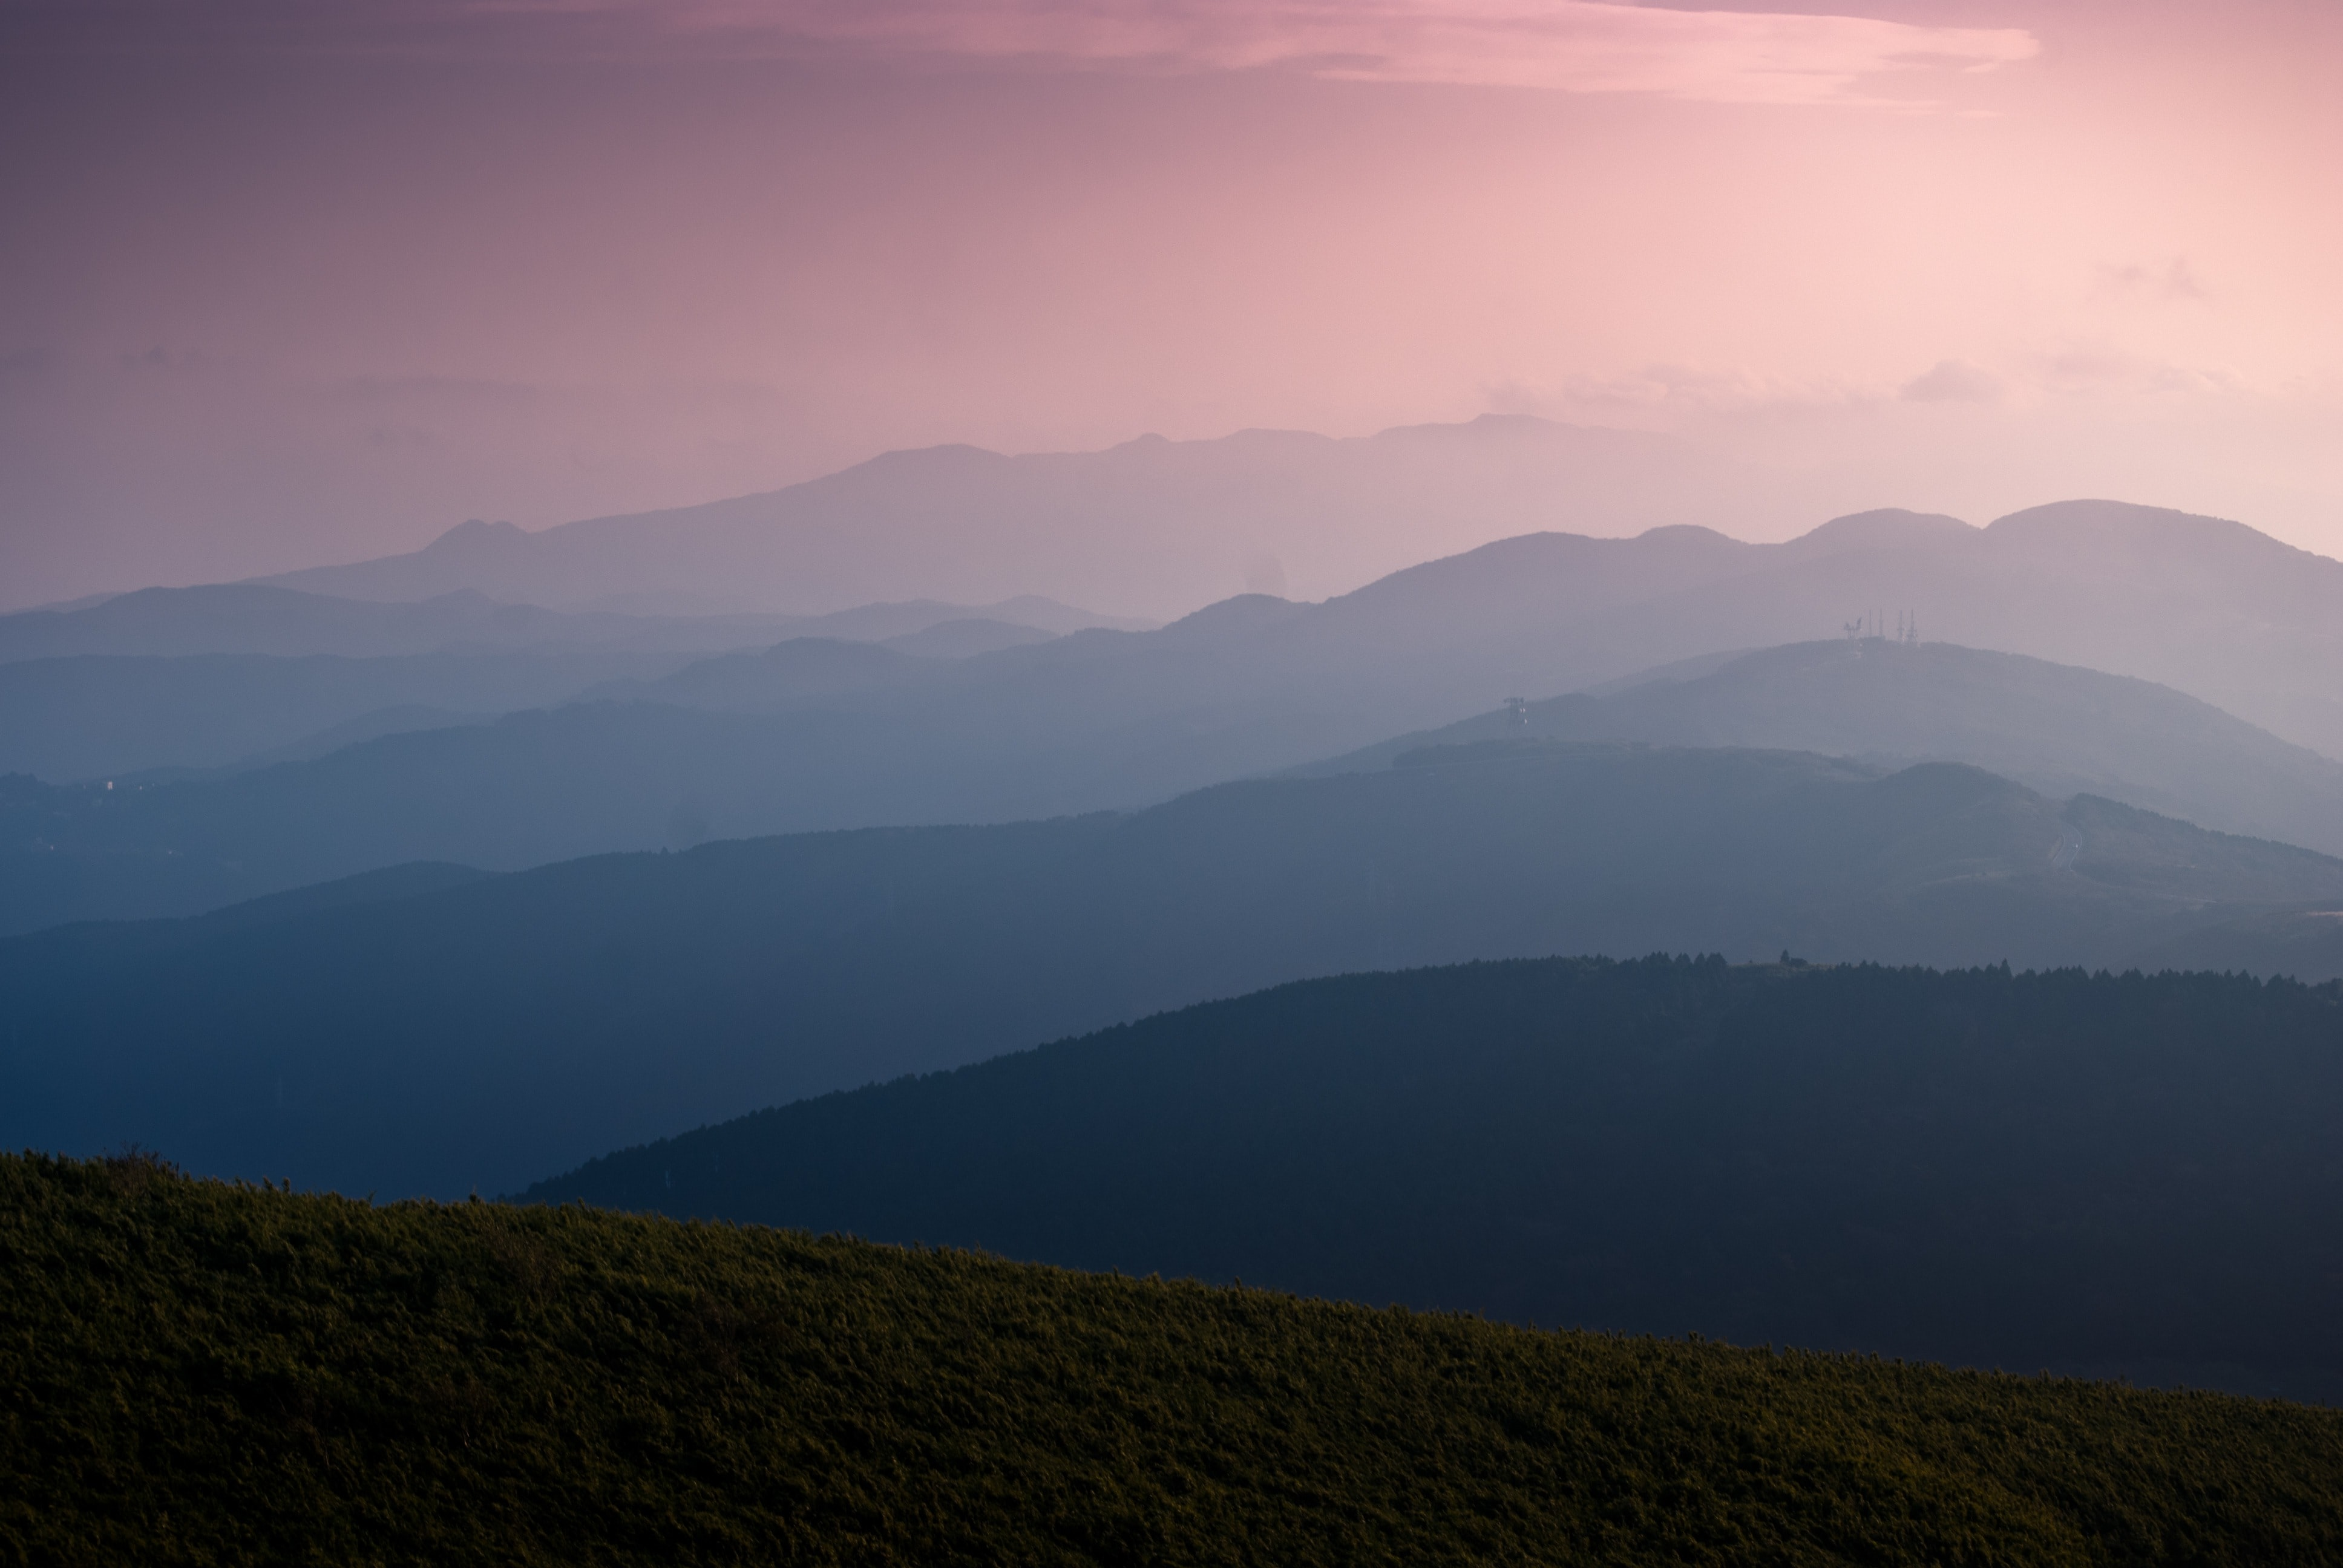 Mountains and hills glowing purple and pink during sunrise or sunset in the Izu Peninsula